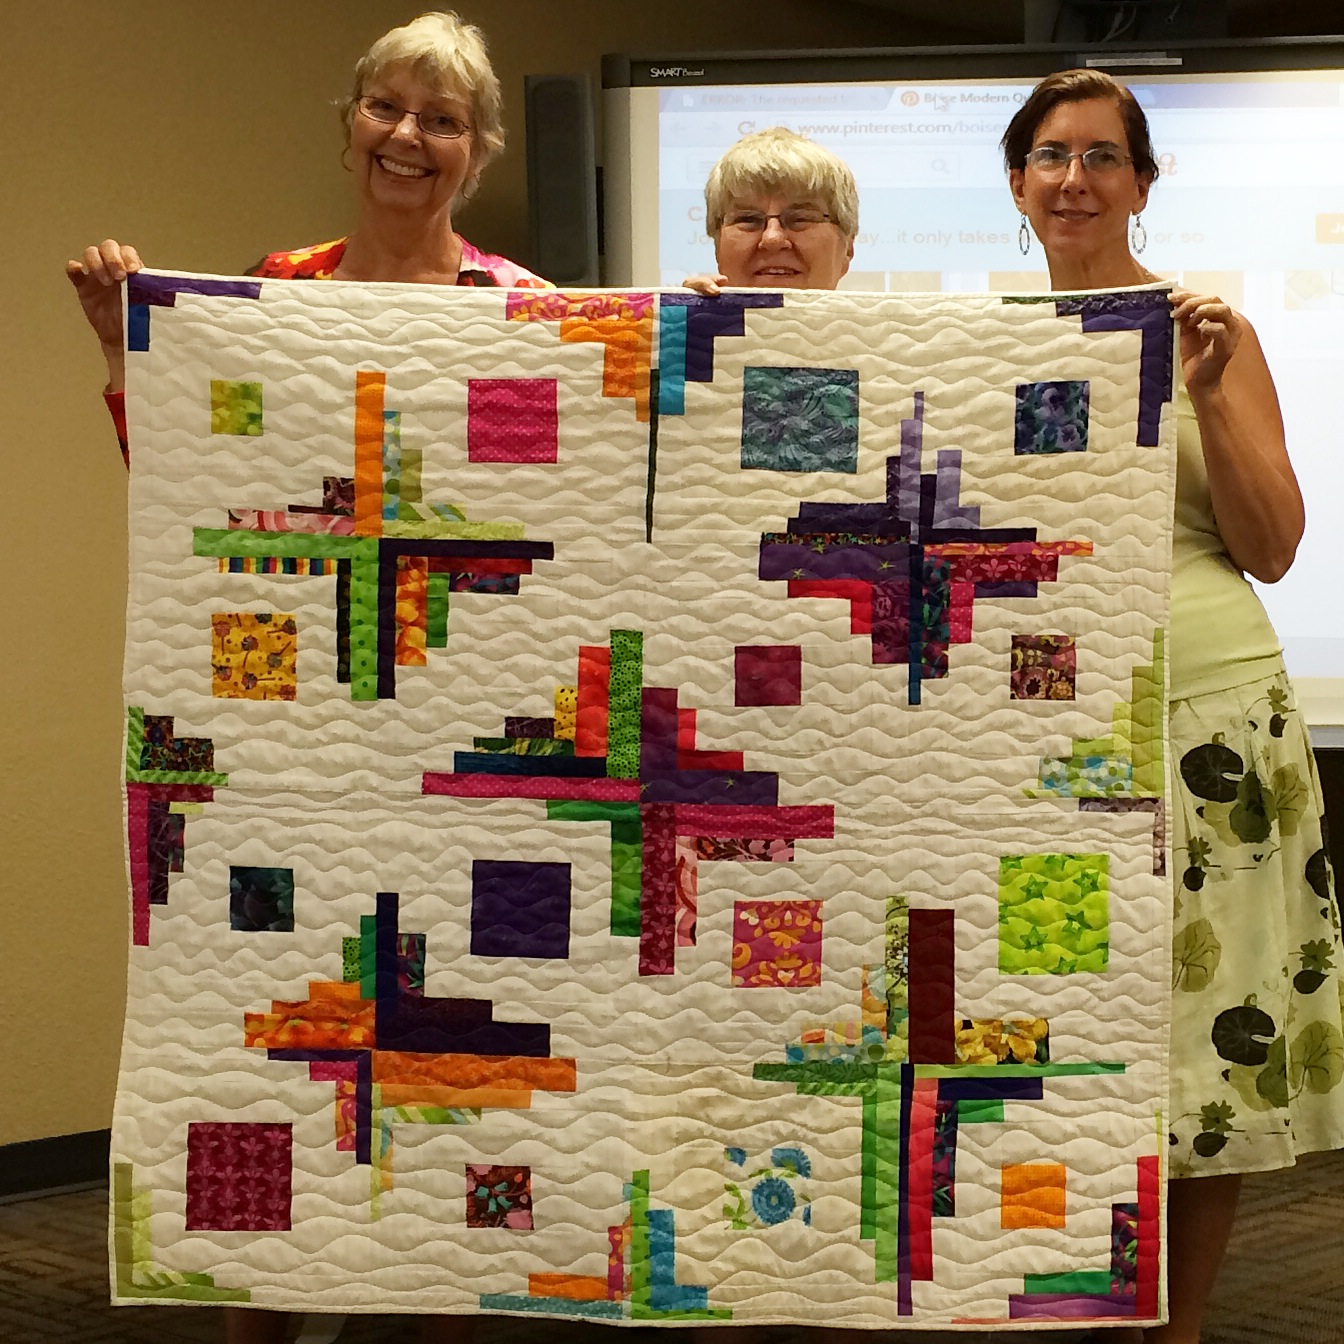 Gwen Smith and Nancy England-colorful quilt